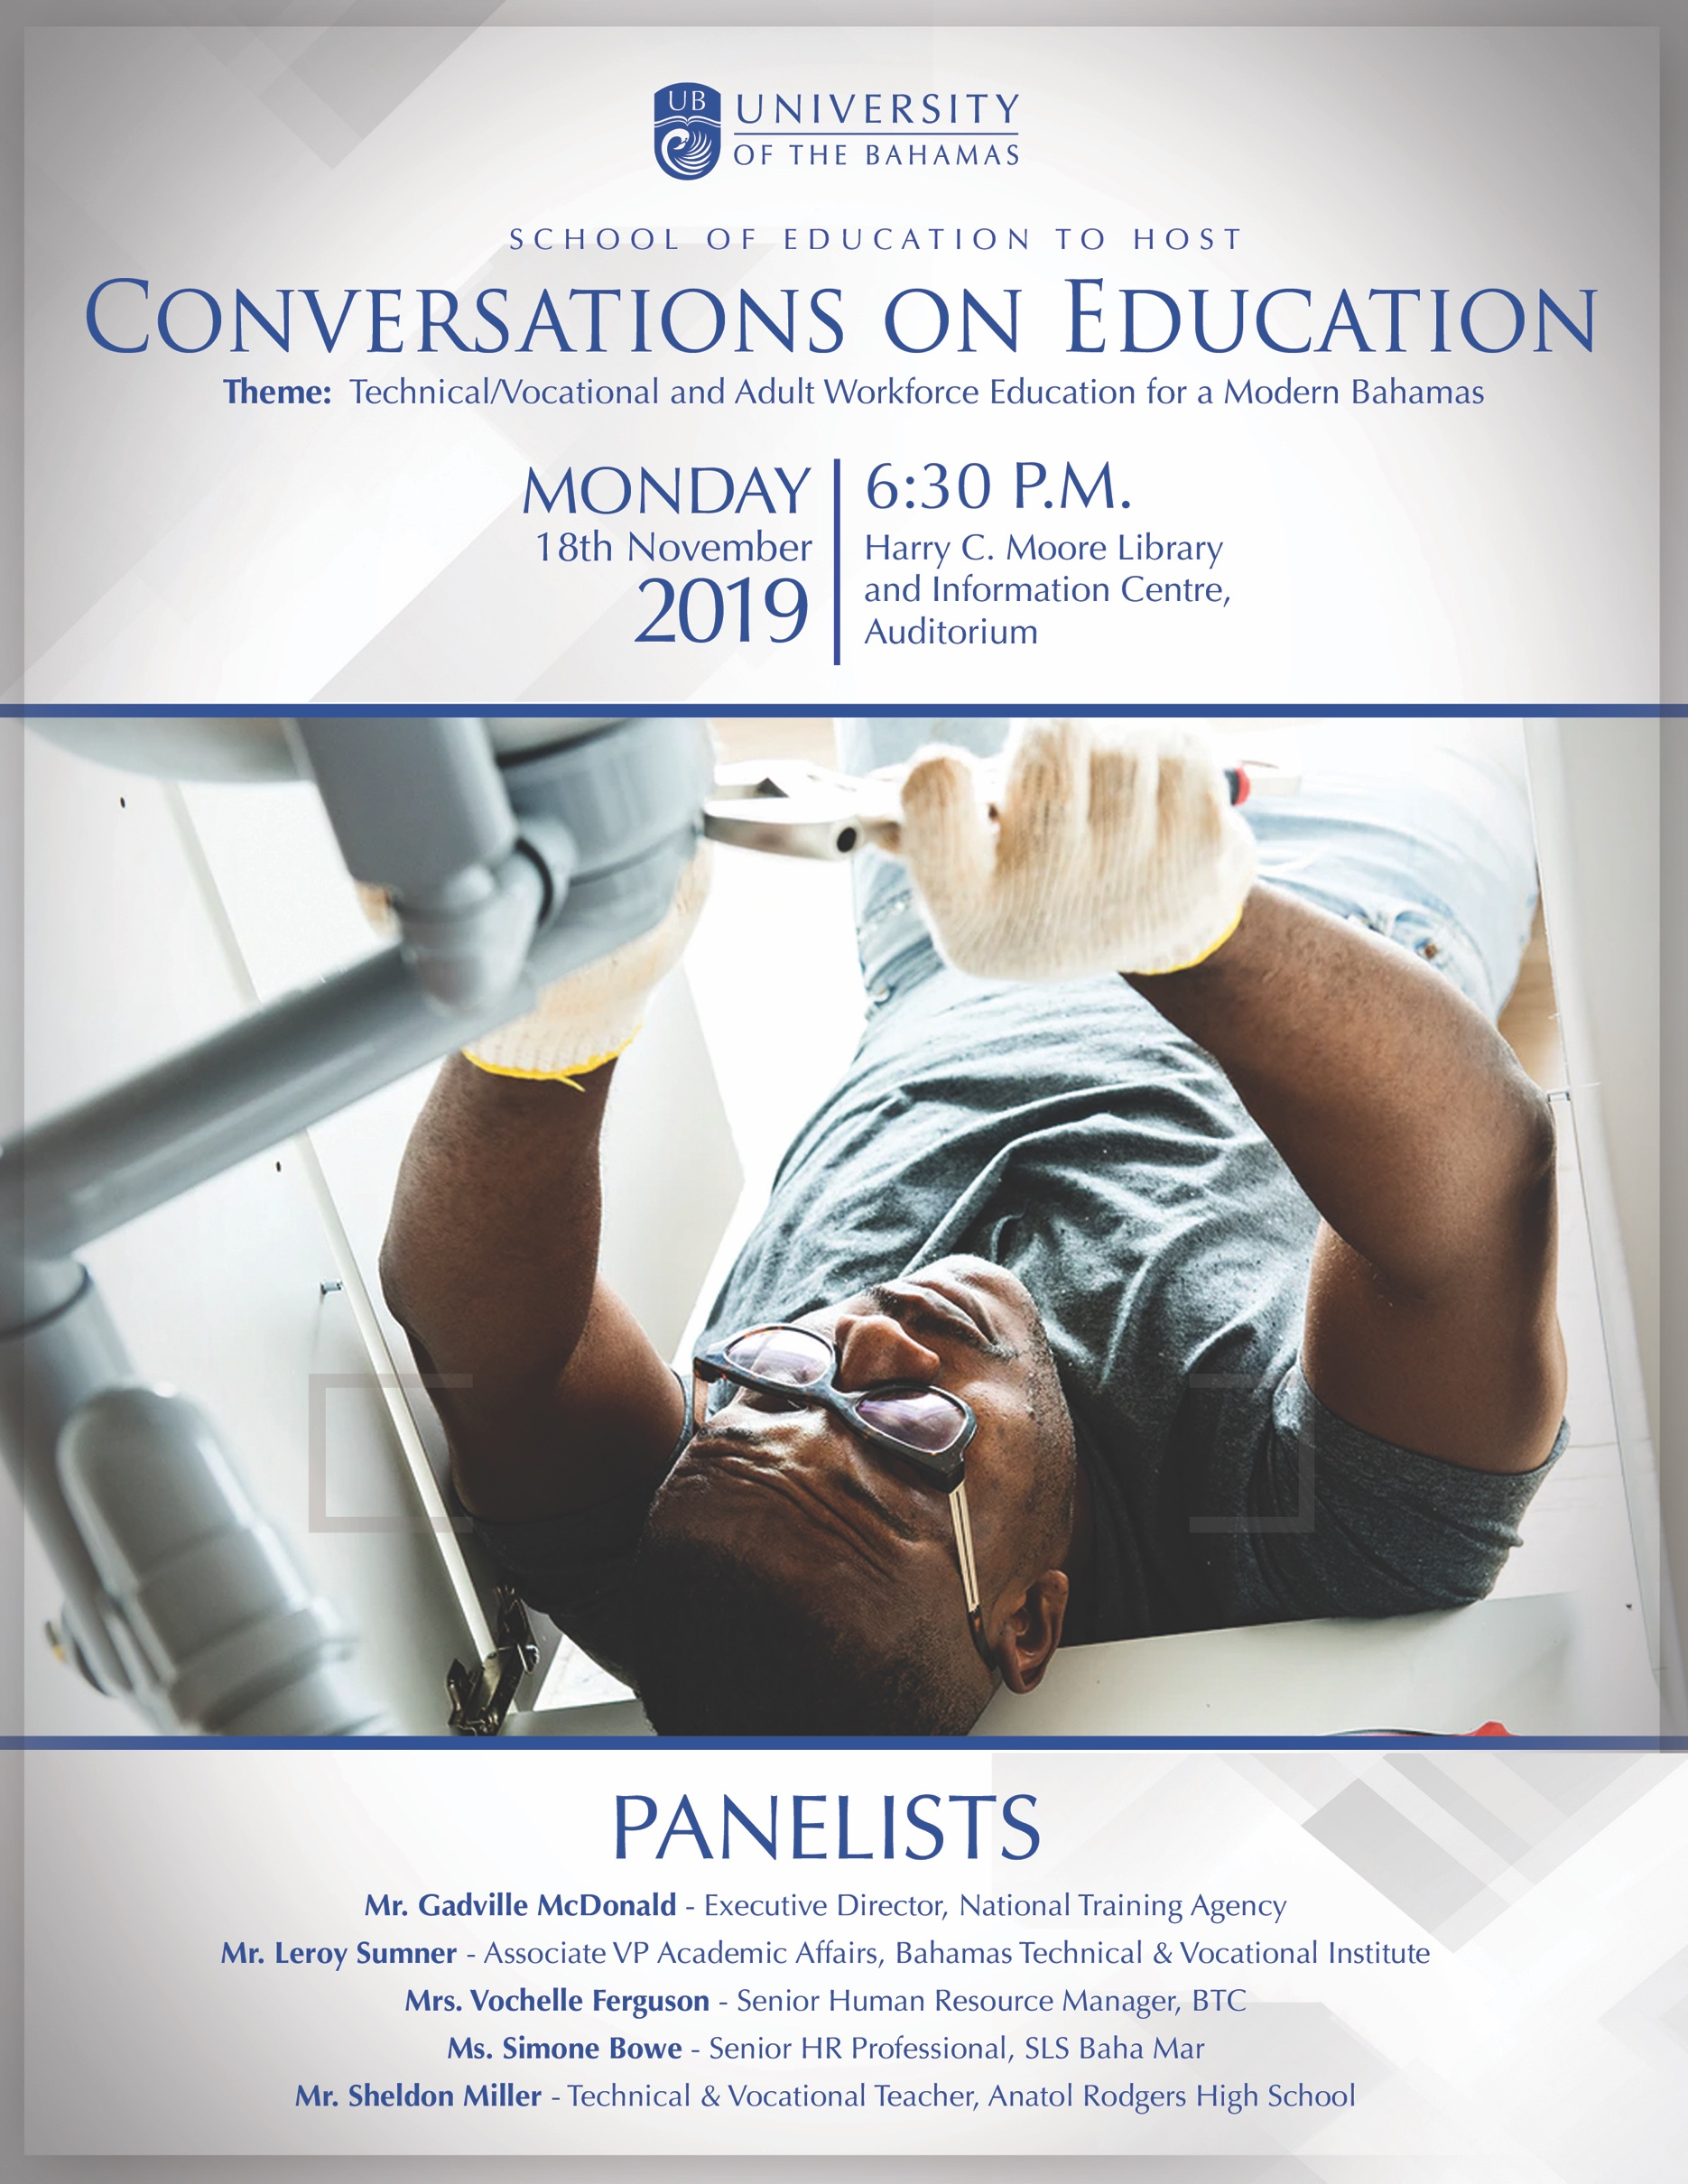 Conversations on Education at University of the Bahamas